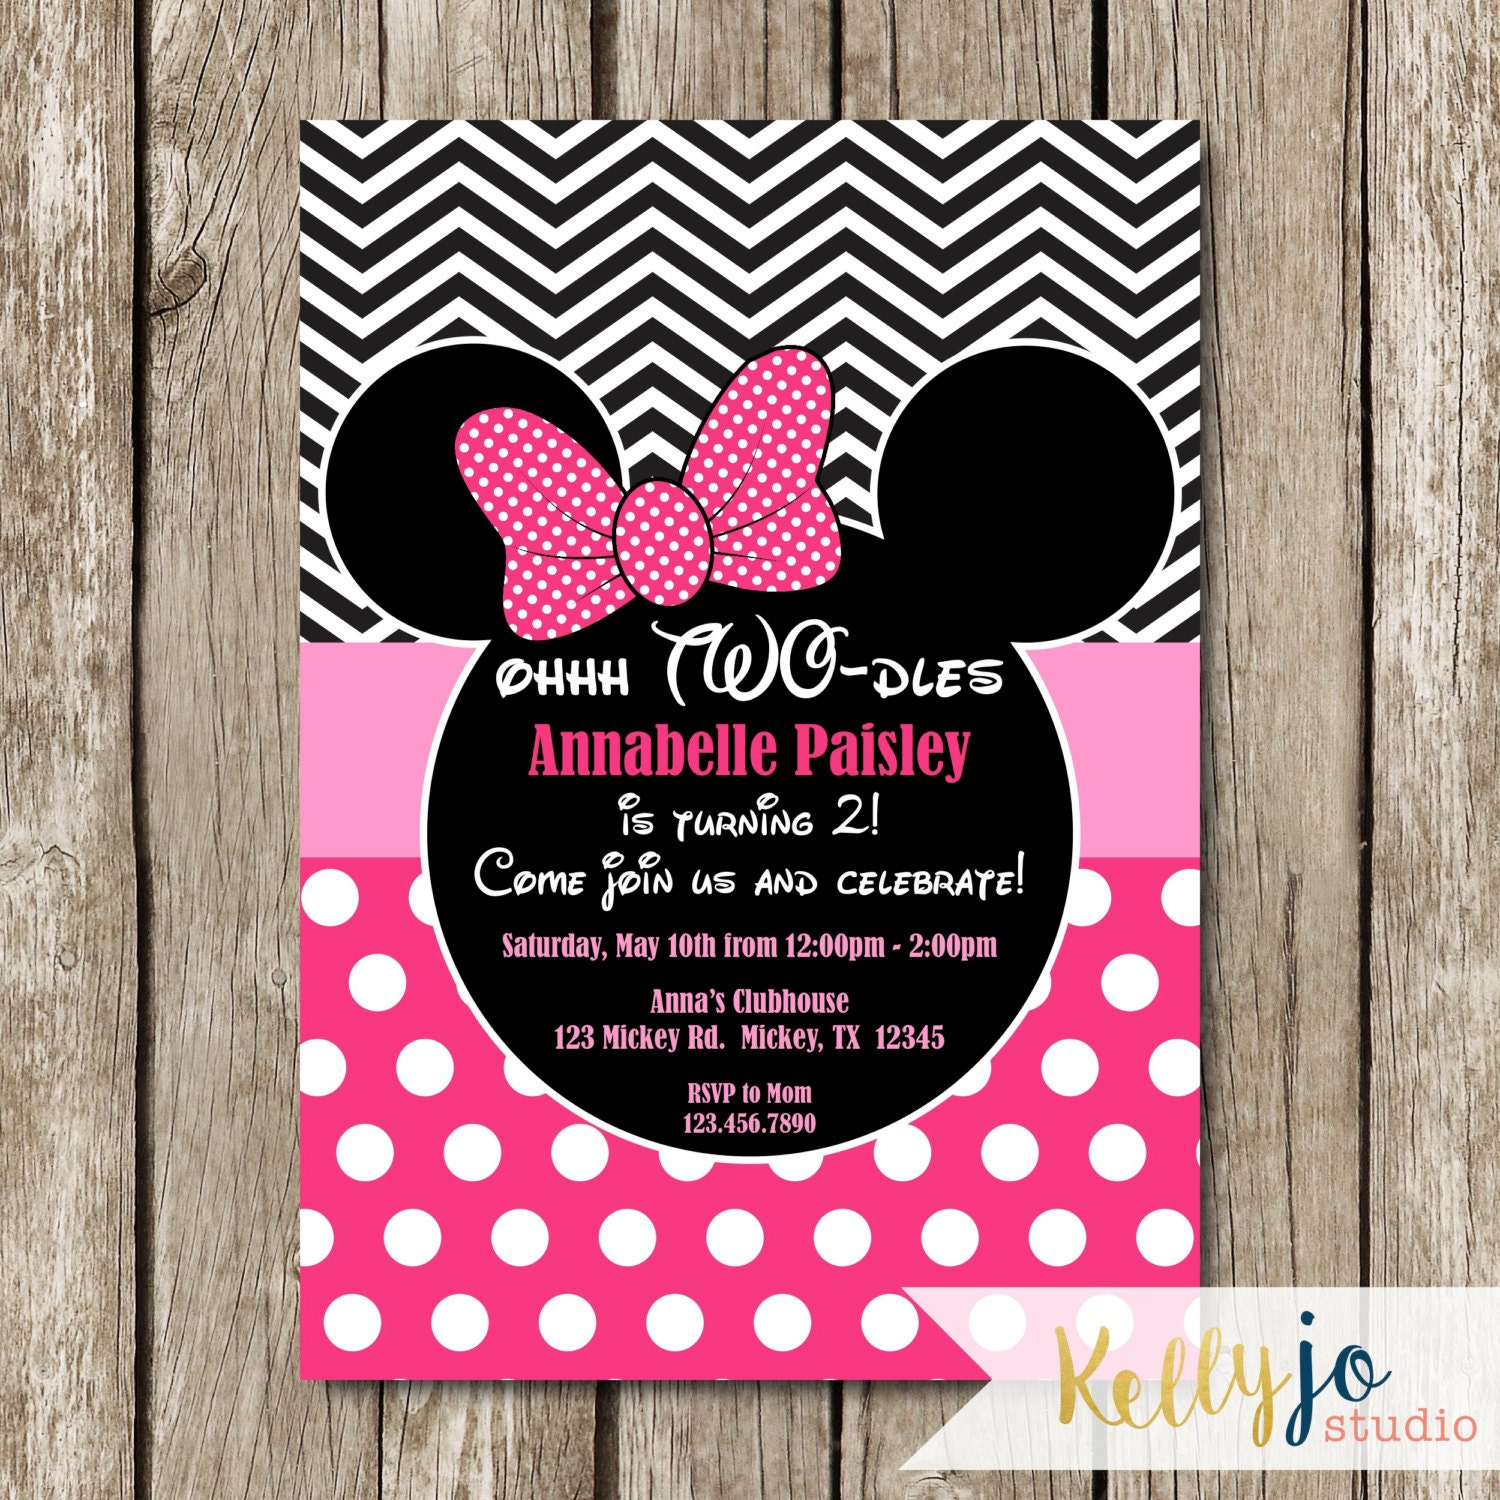 Minnie Mouse Invitations Ideas is awesome invitations design